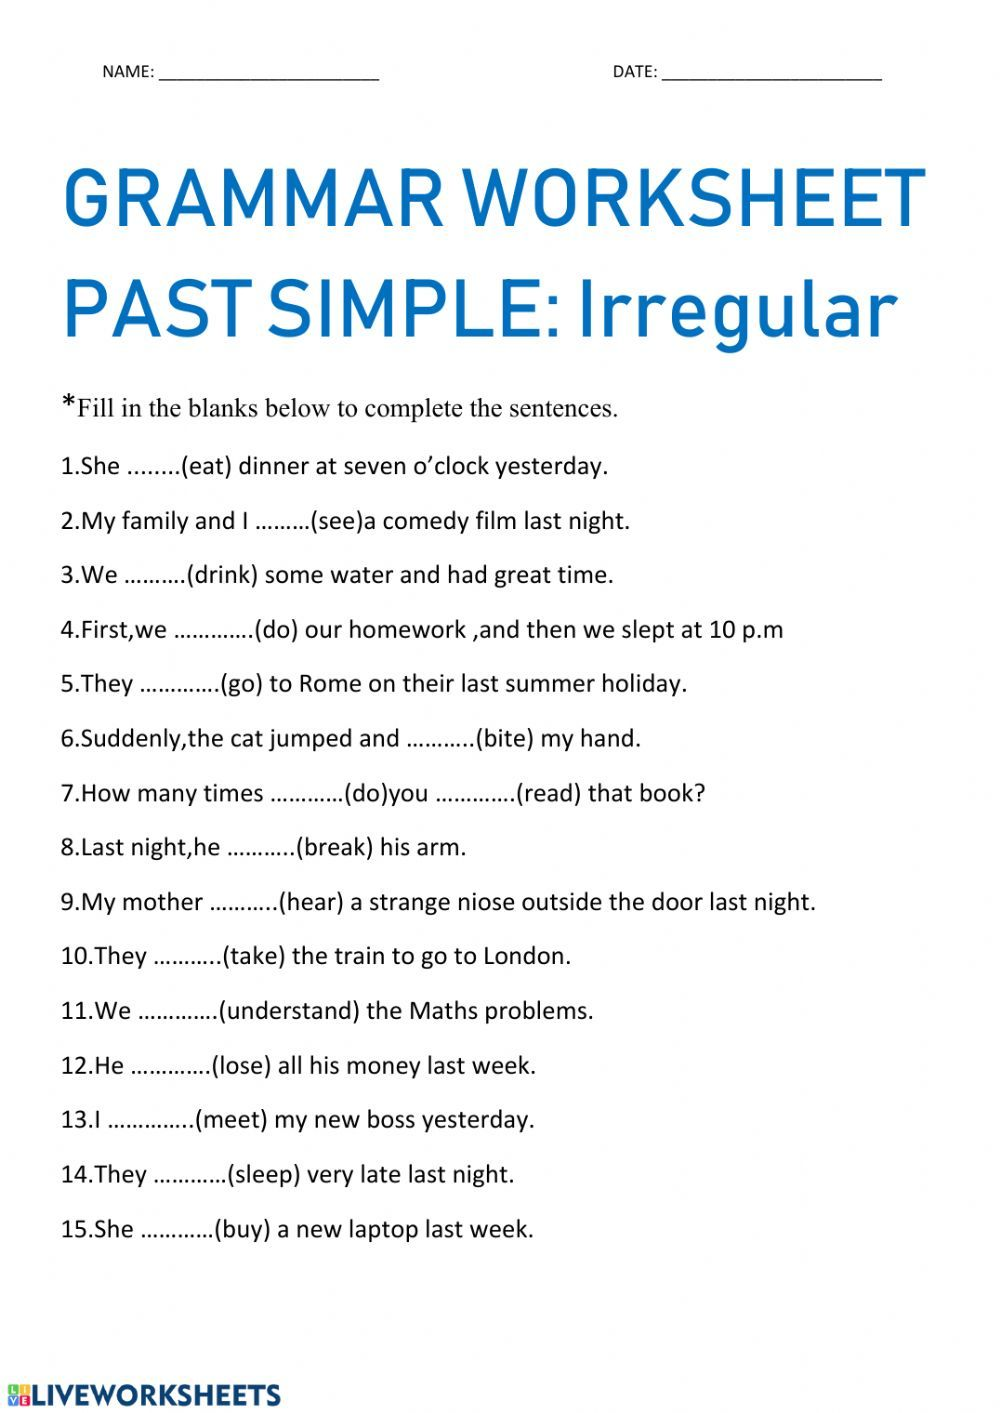 Irregular Verbs Interactive And Downloadable Worksheet You Can Do The Exercises Online Or Download The Works Irregular Verbs Verb Worksheets Teaching Spelling [ 1413 x 1000 Pixel ]